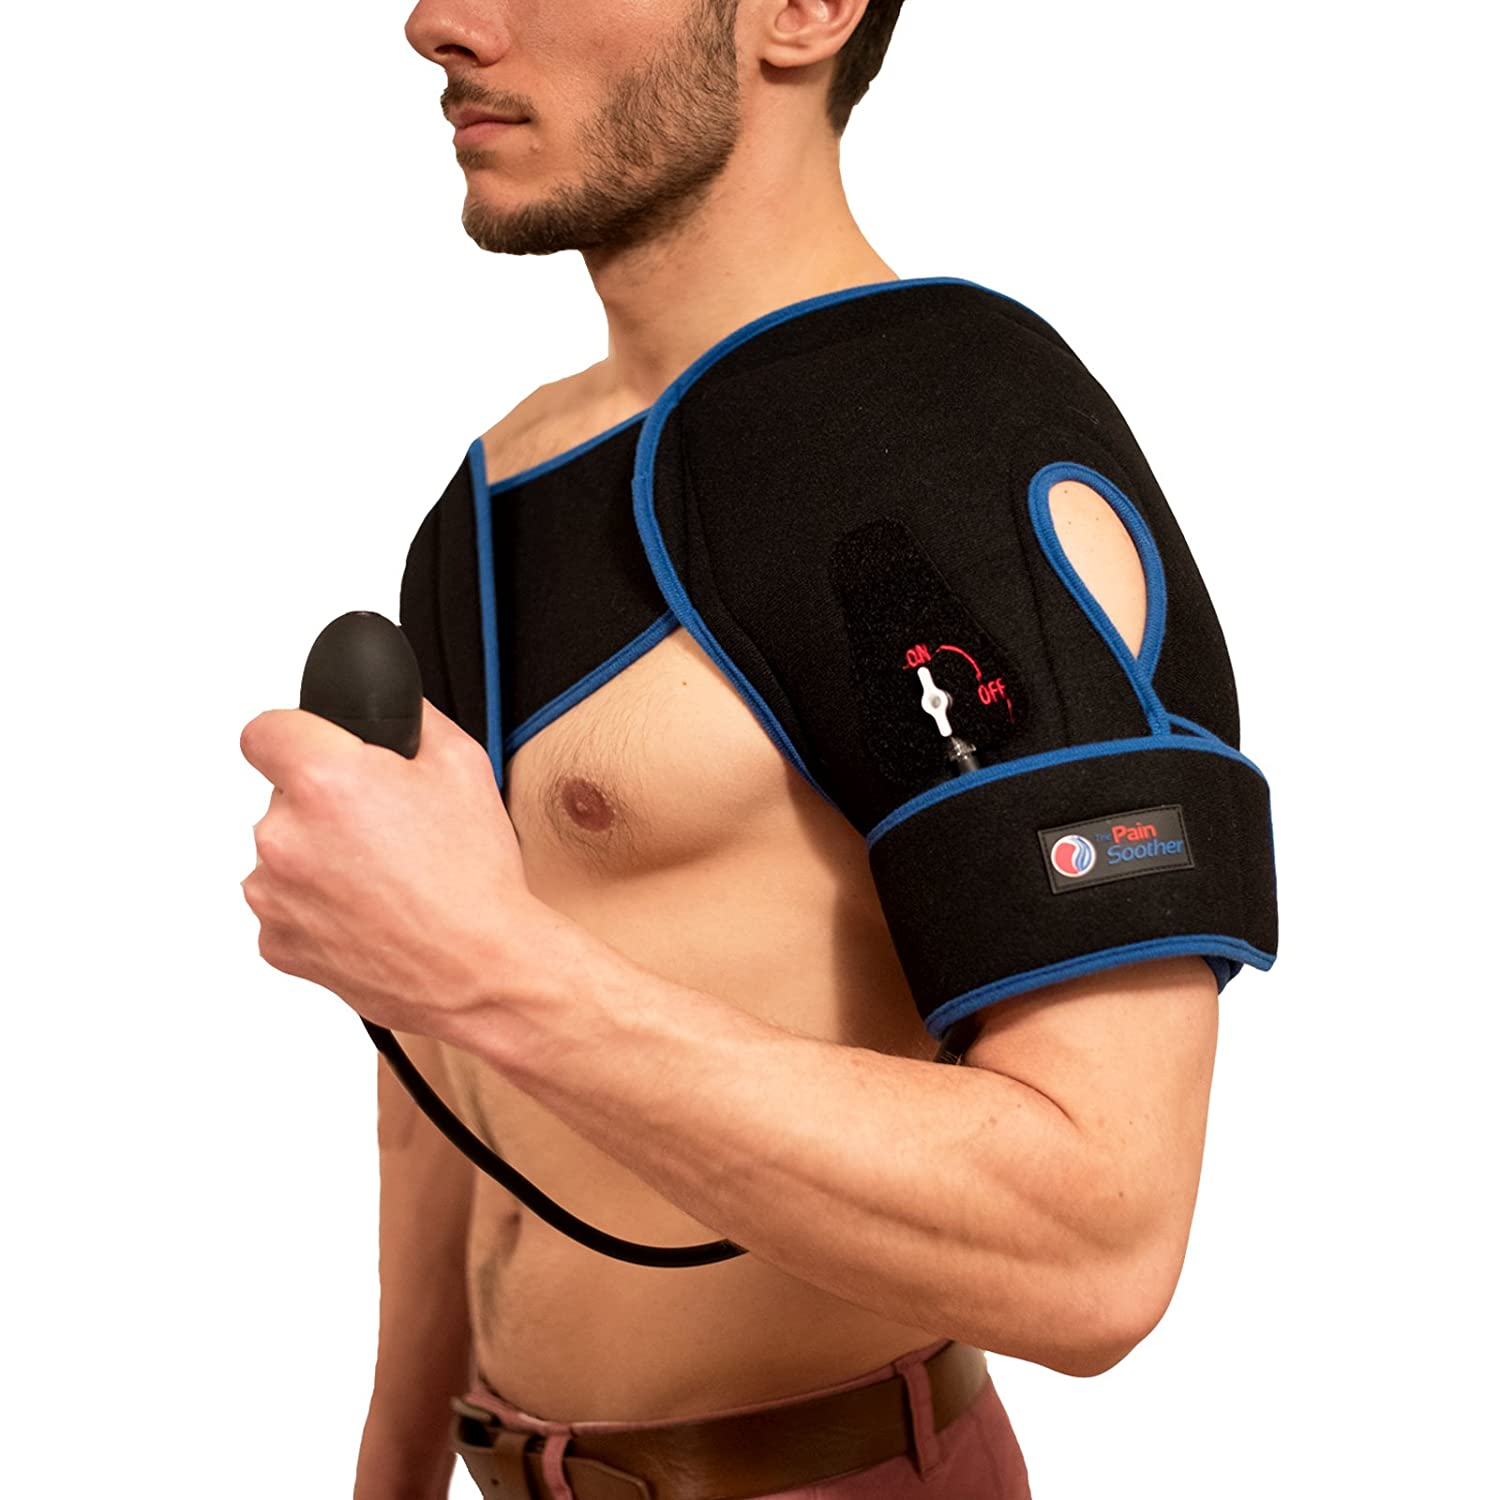 Reusable Shoulder Ice Pack - Premium Cold Therapy Compression with Pump with Extra Long Strap - Good for Rotator Cuff, Sprains, Sports Injuries, Arthritis, Impingement Pain and More